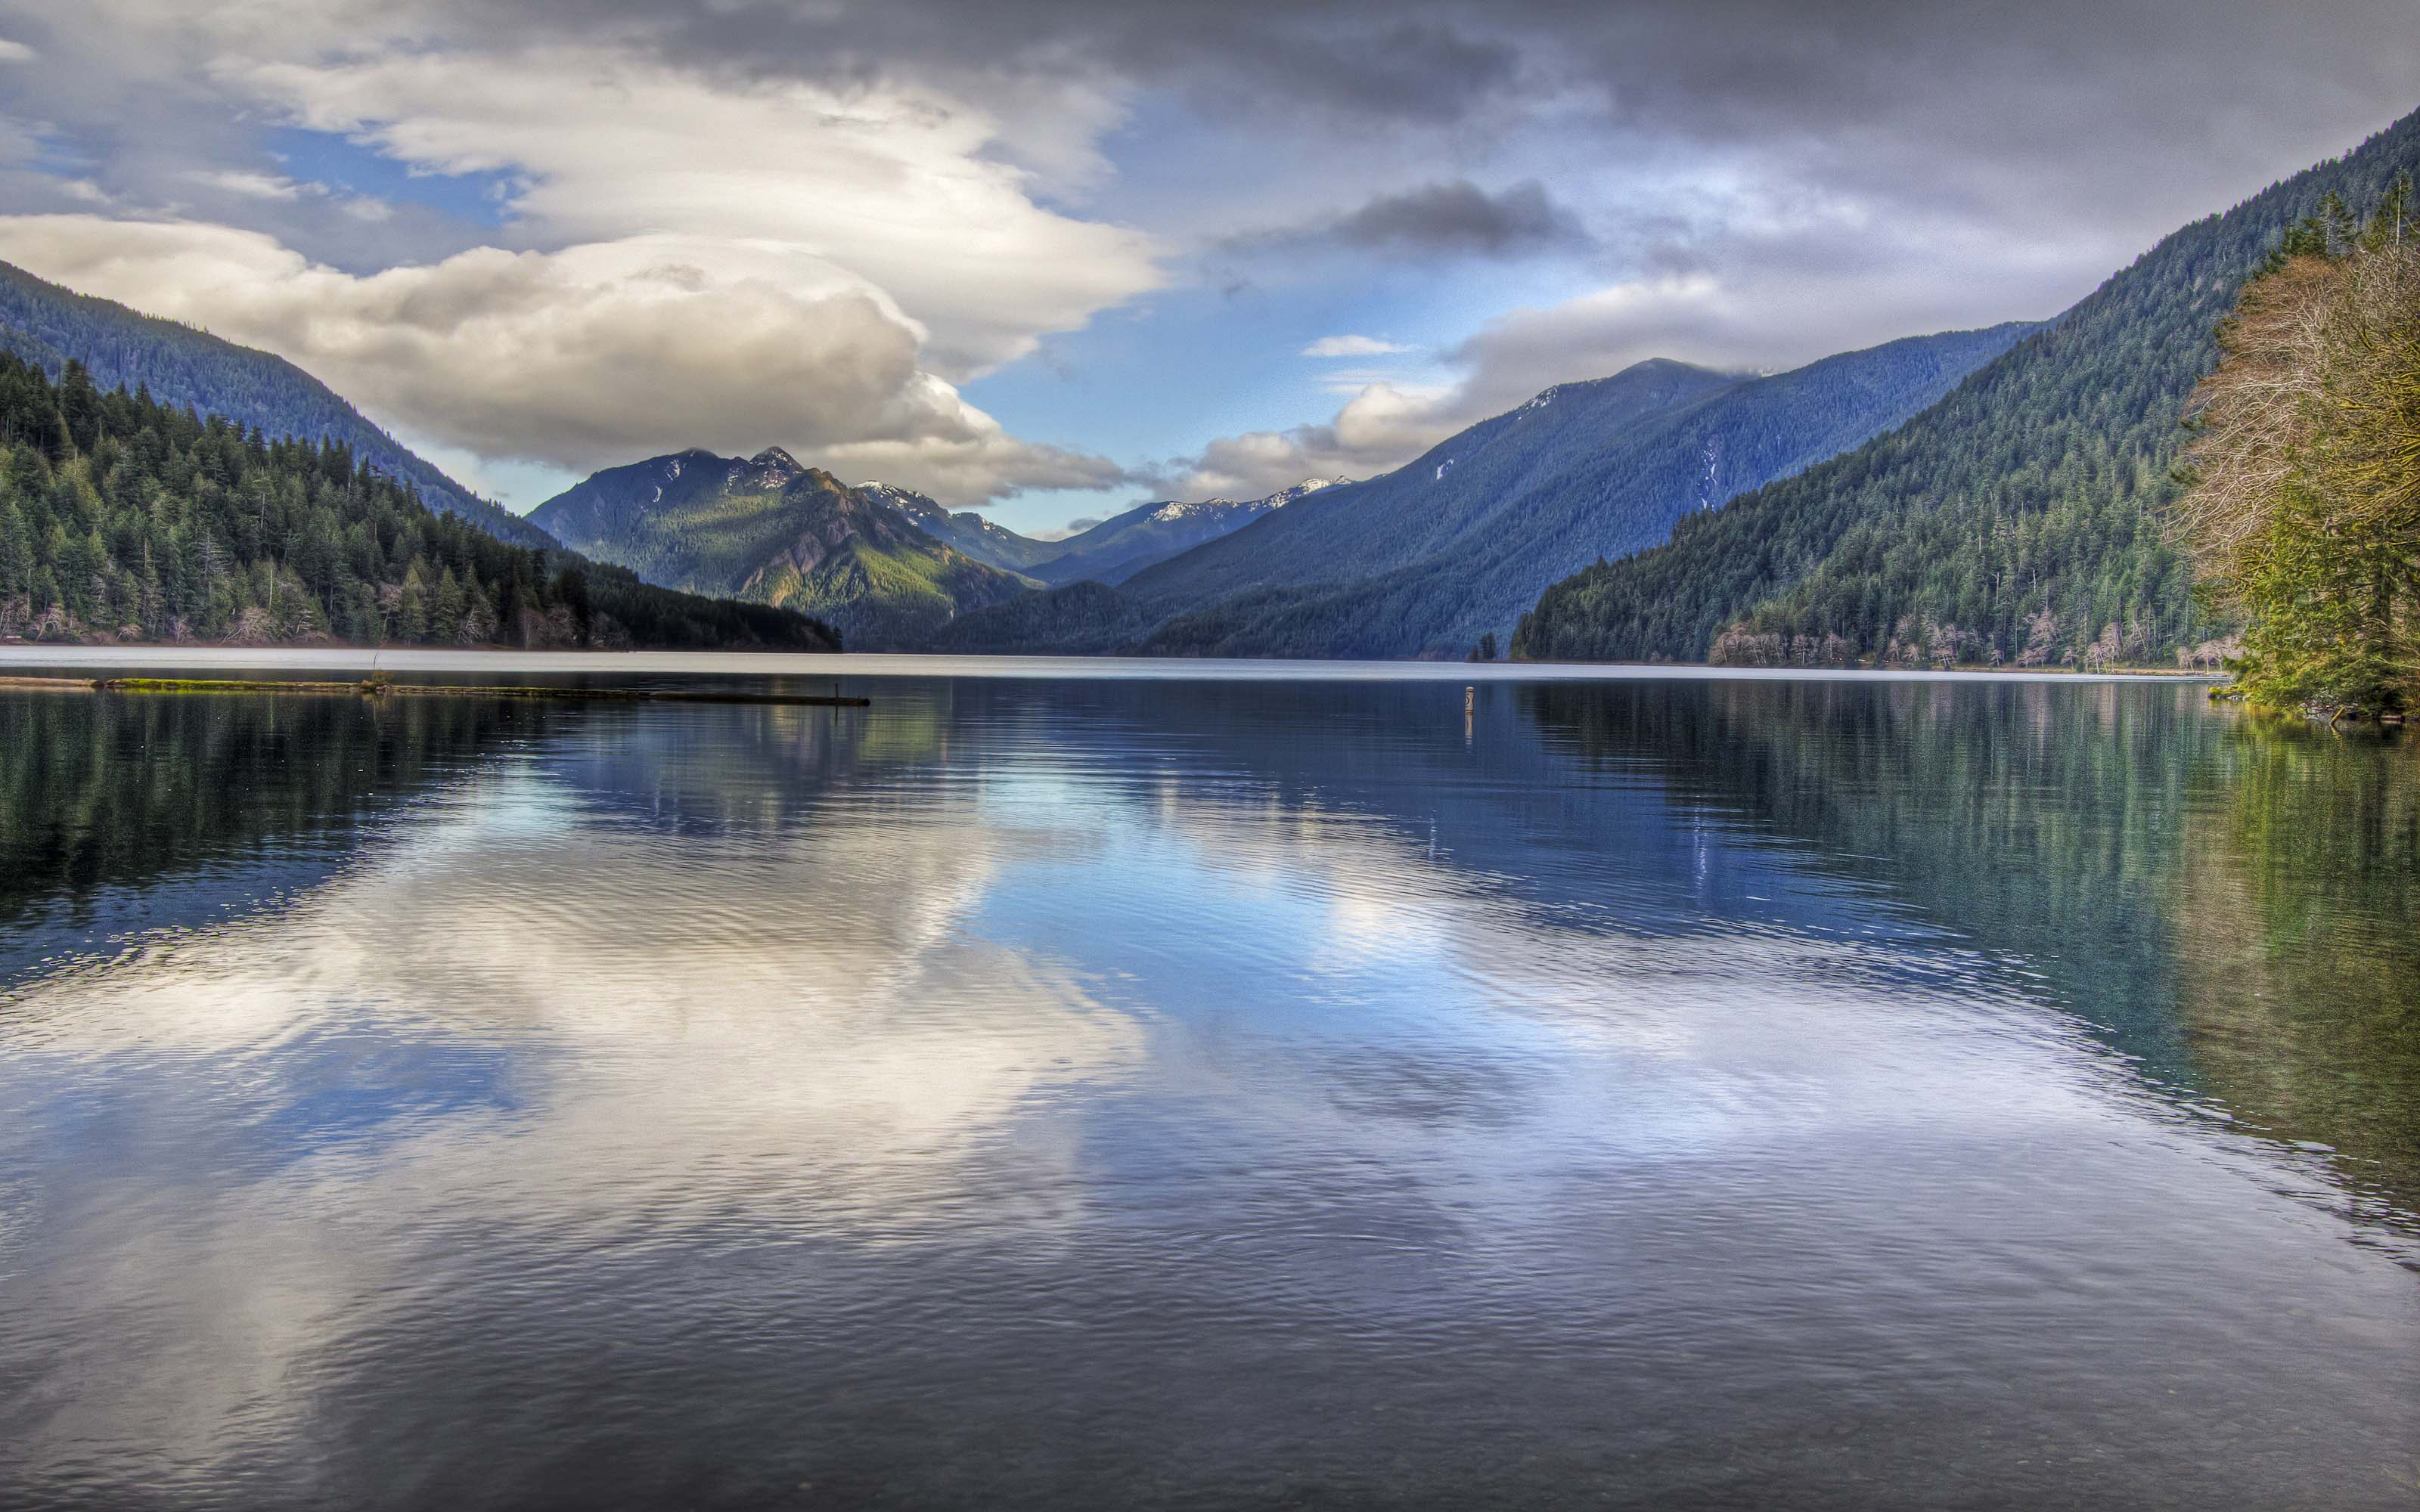 Cars 2 Wallpaper Free Download Lake Crescent Located In Northwest Washington Wallpaper